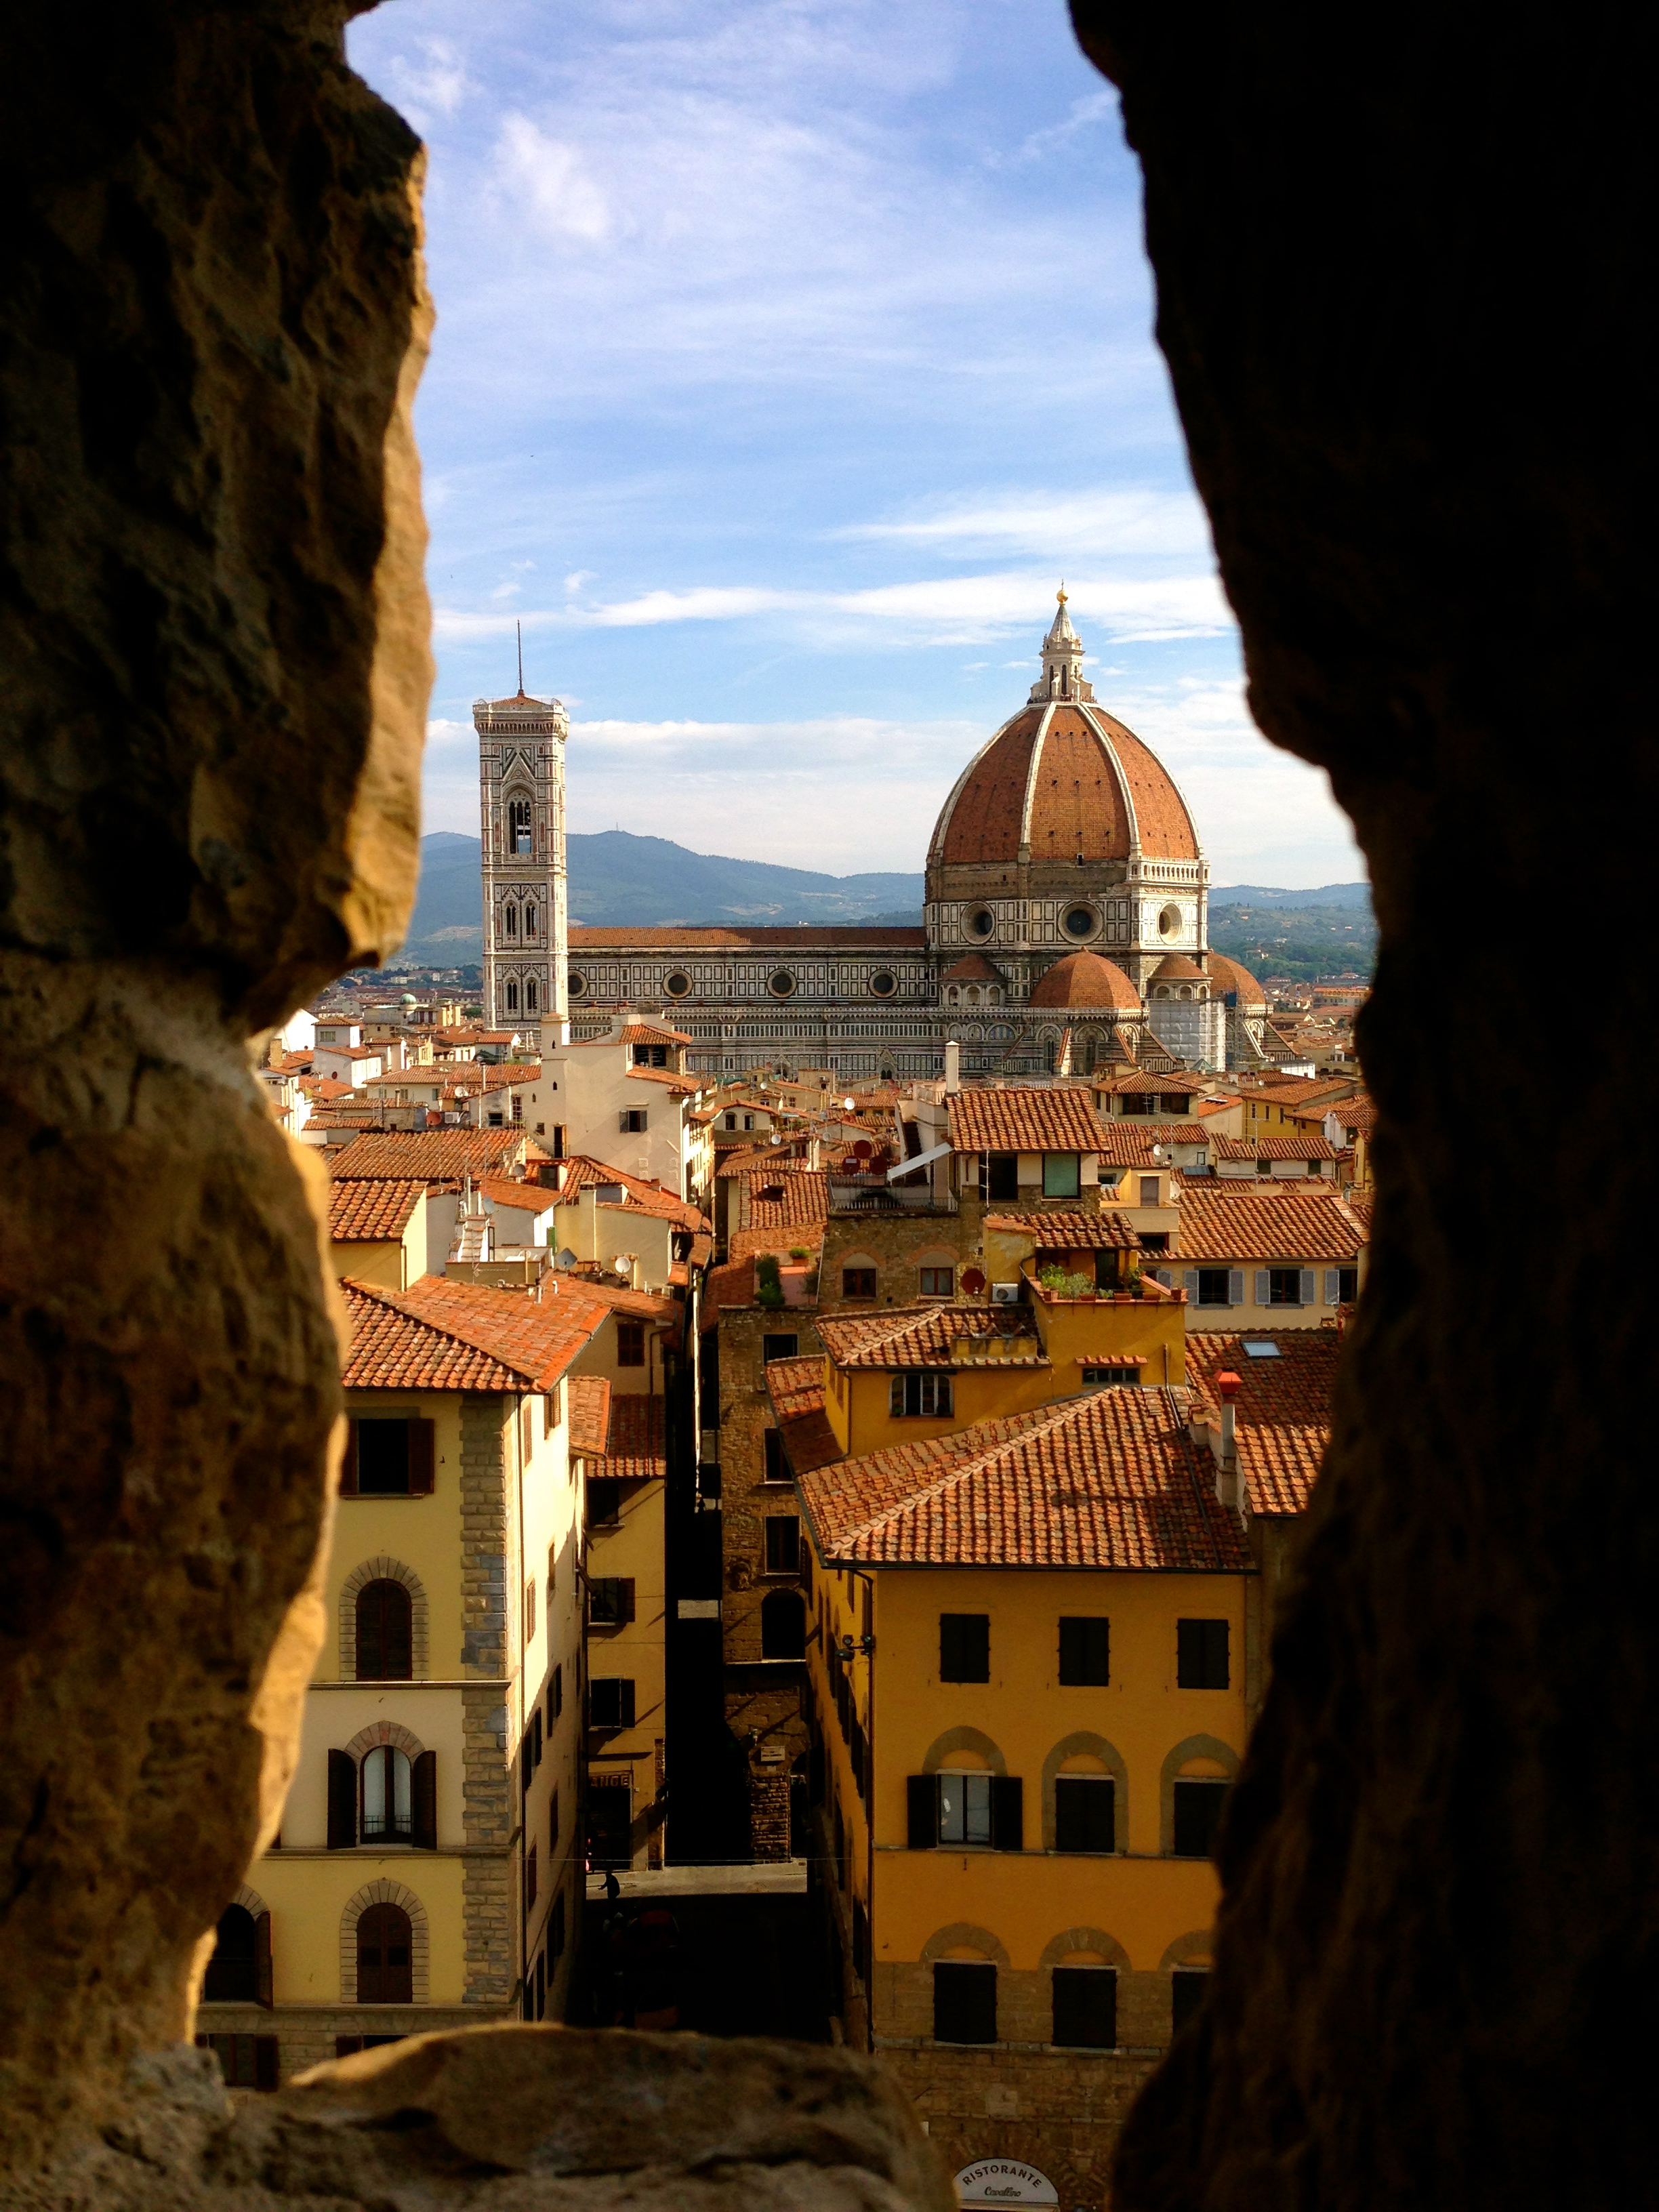 Best Views in Florence View of the Duomo from the Tower of the Palazzo Vecchio